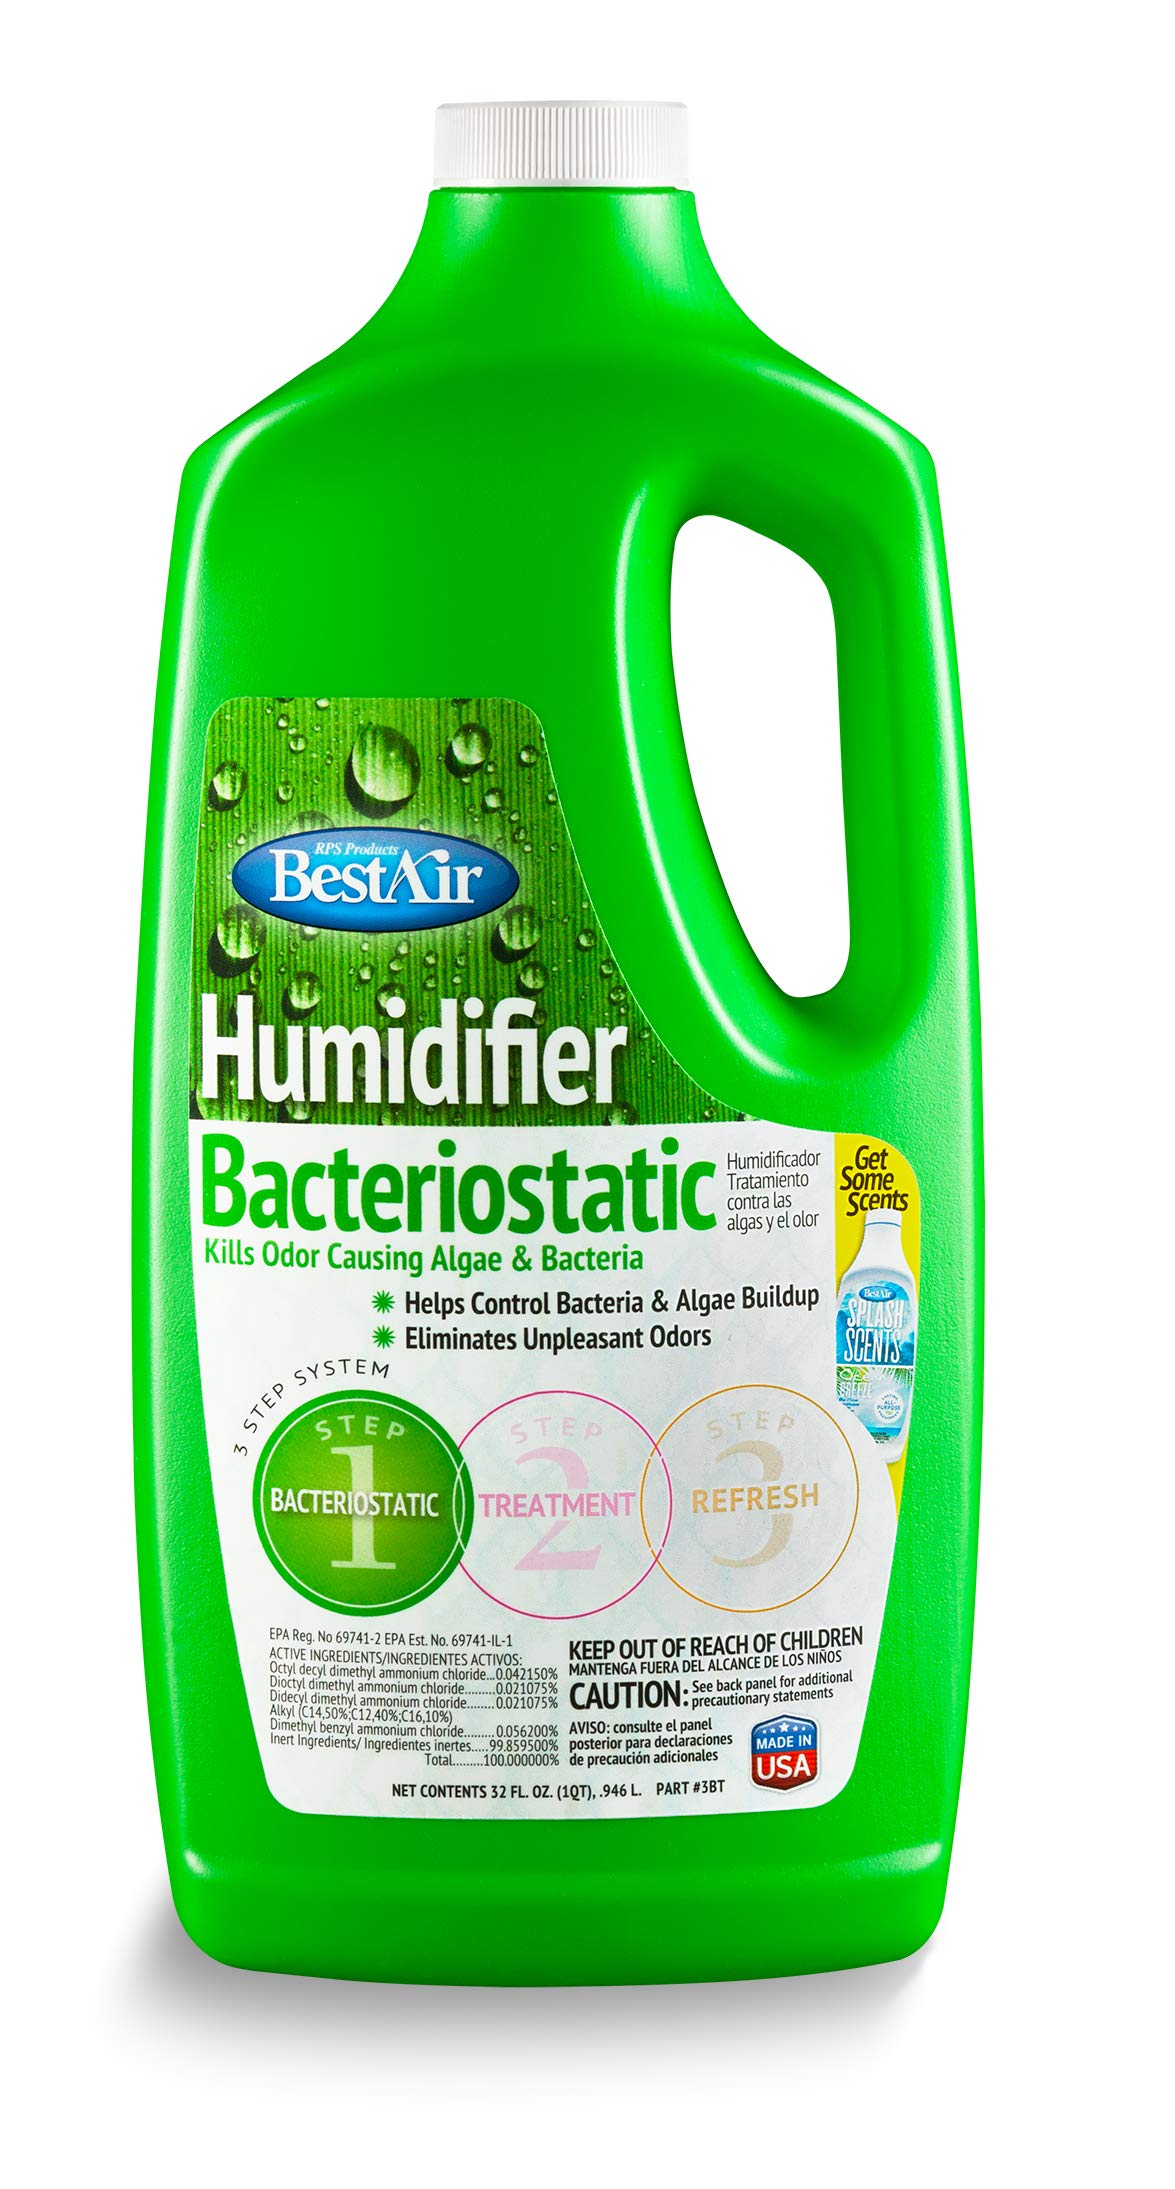 BestAir 3BT-PDQ-6 Original BT Humidifier Bacteriostatic Water Treatment, 32 fl oz, 6 Pack by BestAir